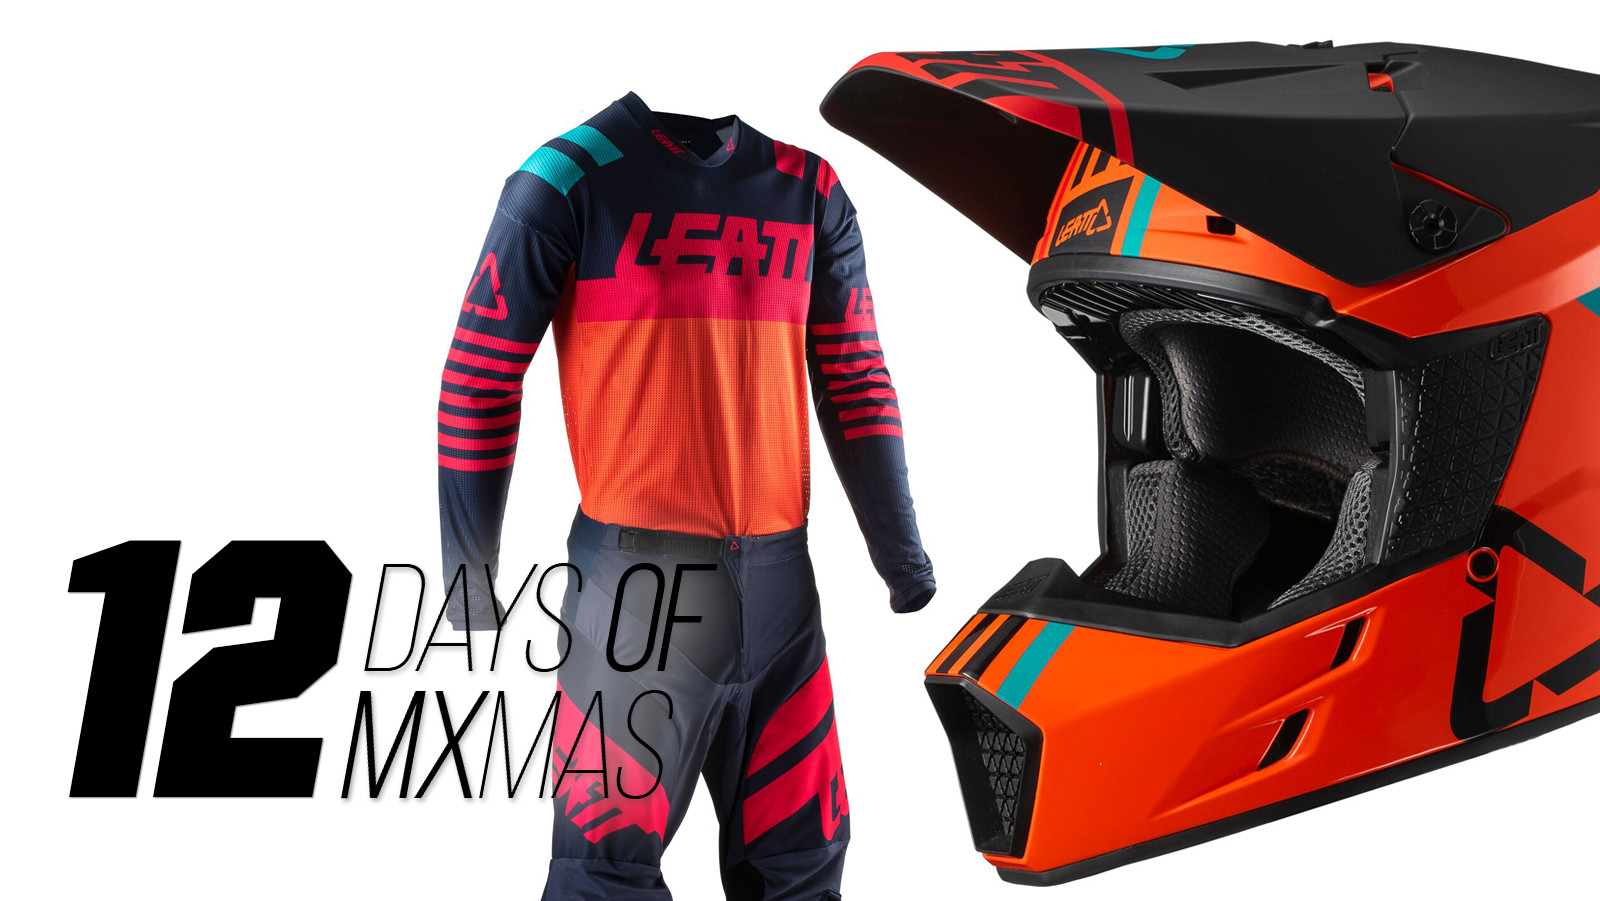 12 Days of MXmas: Leatt